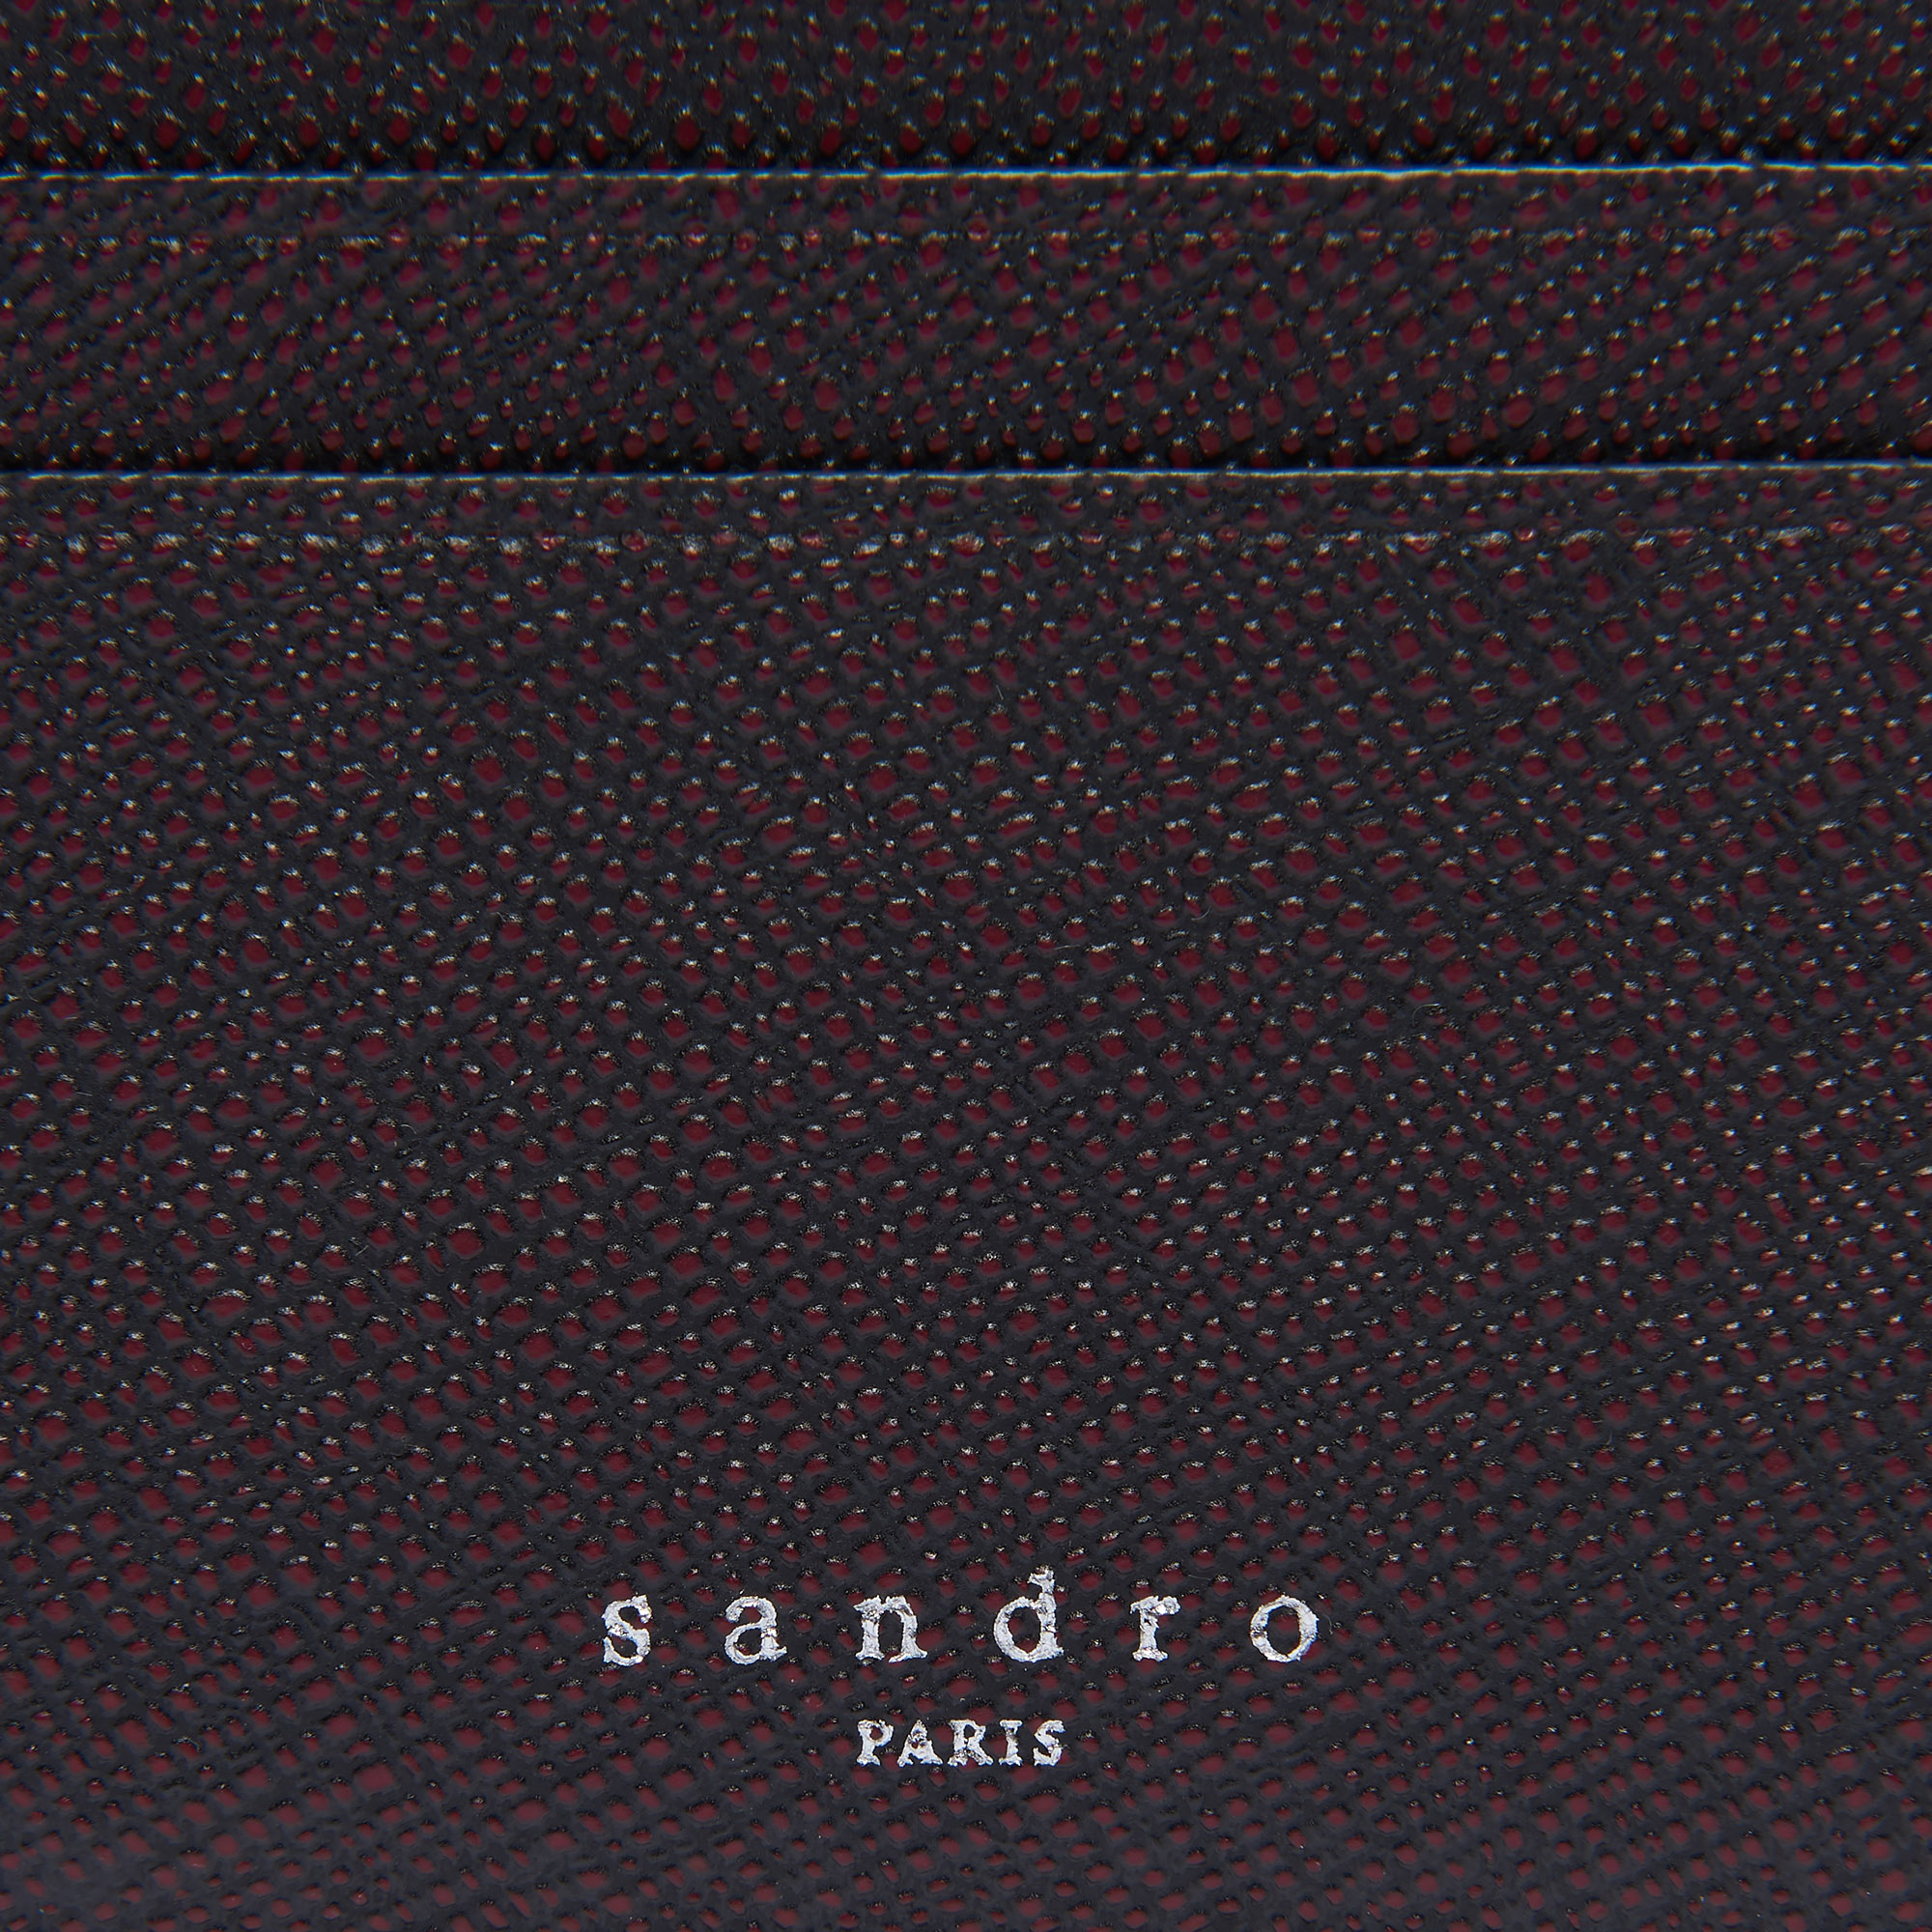 098169d2a9d8 ... Two-tone saffiano leather card holder   Leather Goods color Burgundy  red Black